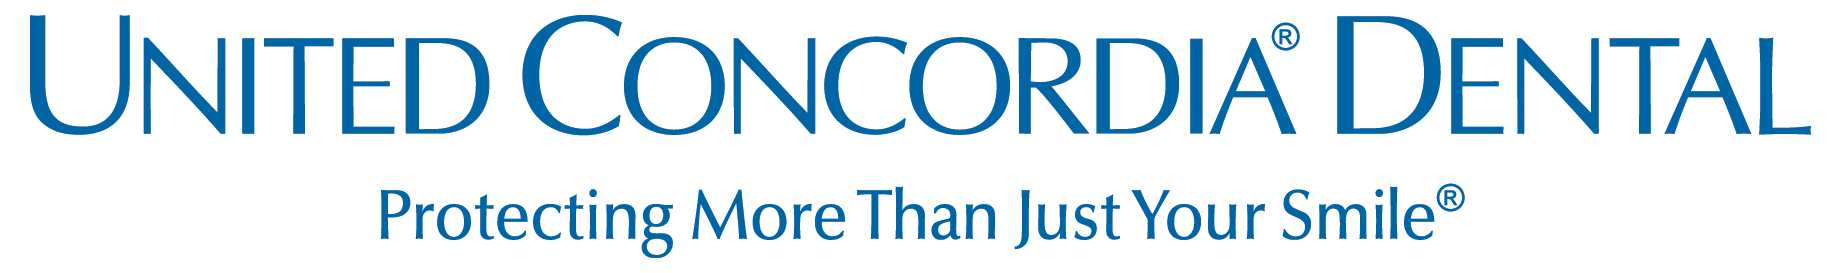 offered since 1991 the united concordia dental services plan is one of the most popular programs provided by pasr the price of a single service without